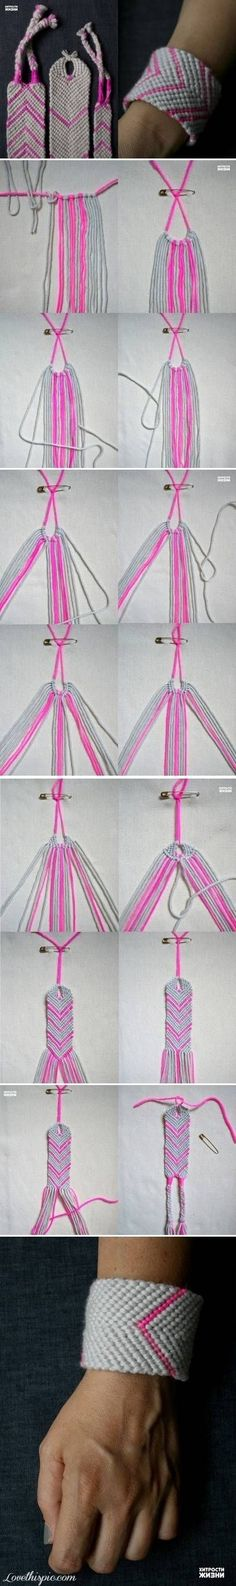 DIY Baubles Weave Bracelet Pictures, Photos, and Images for Facebook, Tumblr, Pinterest, and Twitter